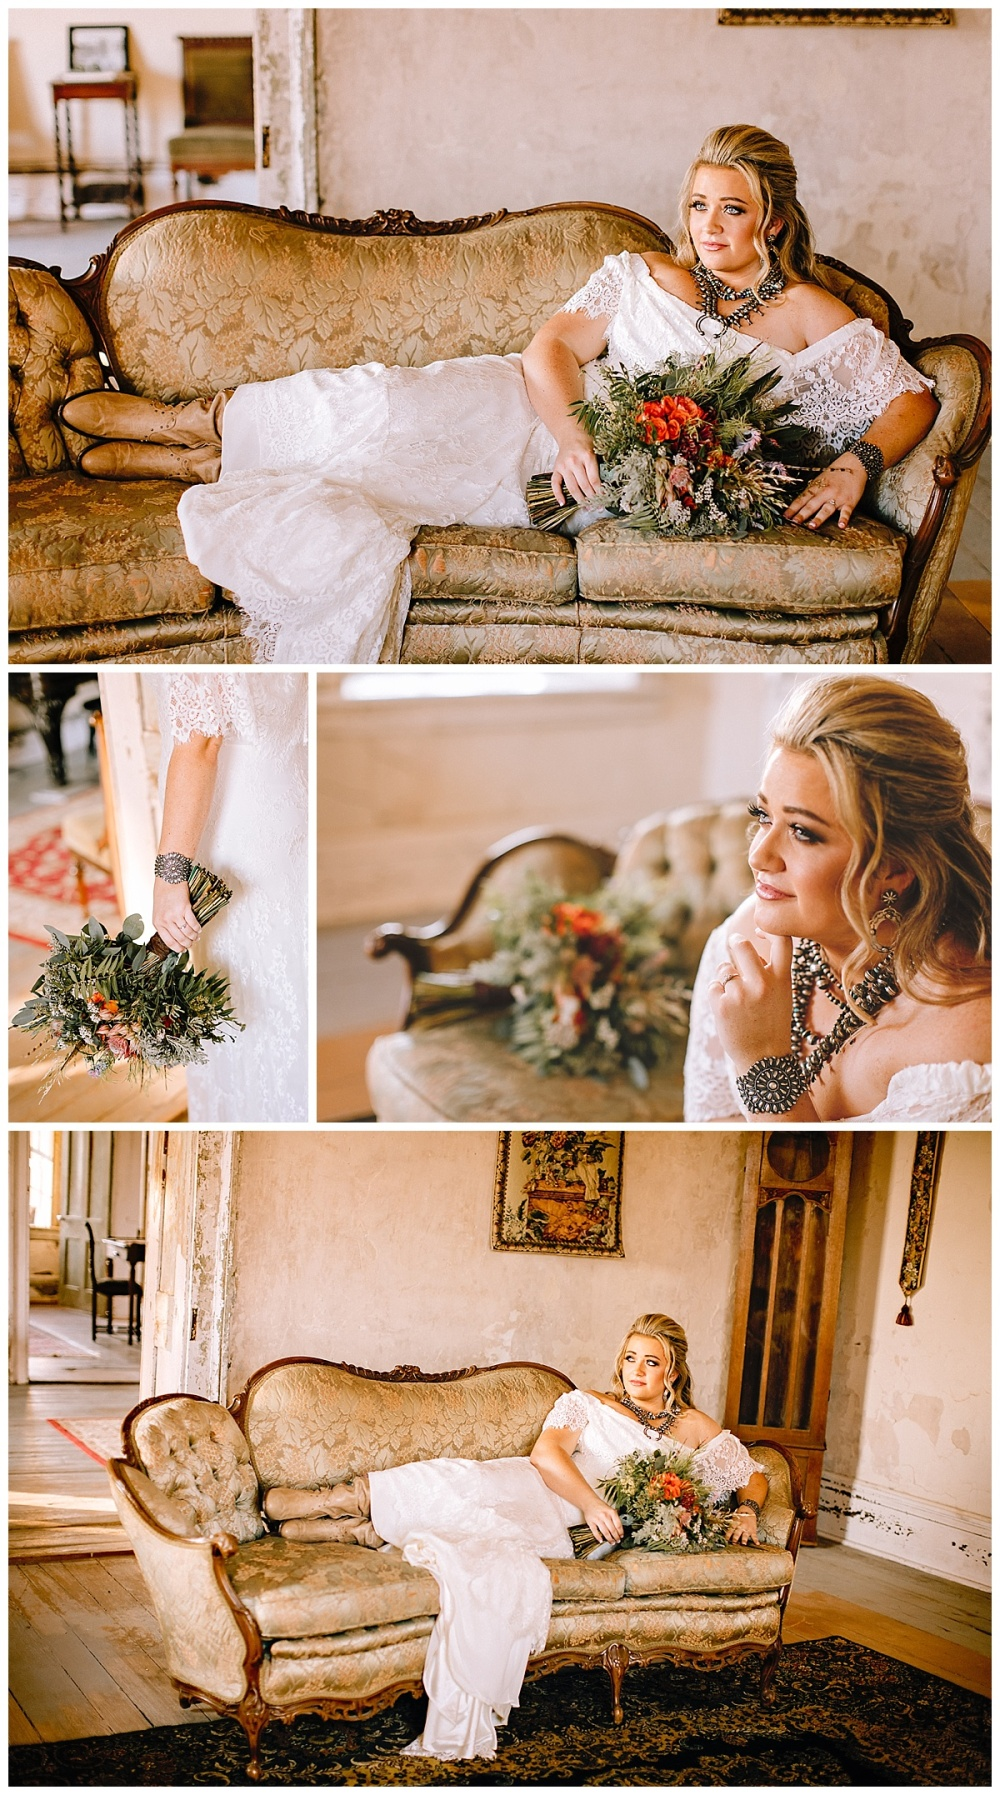 Carly-Barton-Photography-Whitehall-Polley-Mansion-Sutherland-Springs-Texas-Wedding-Bridals-Caitlin_0003.jpg